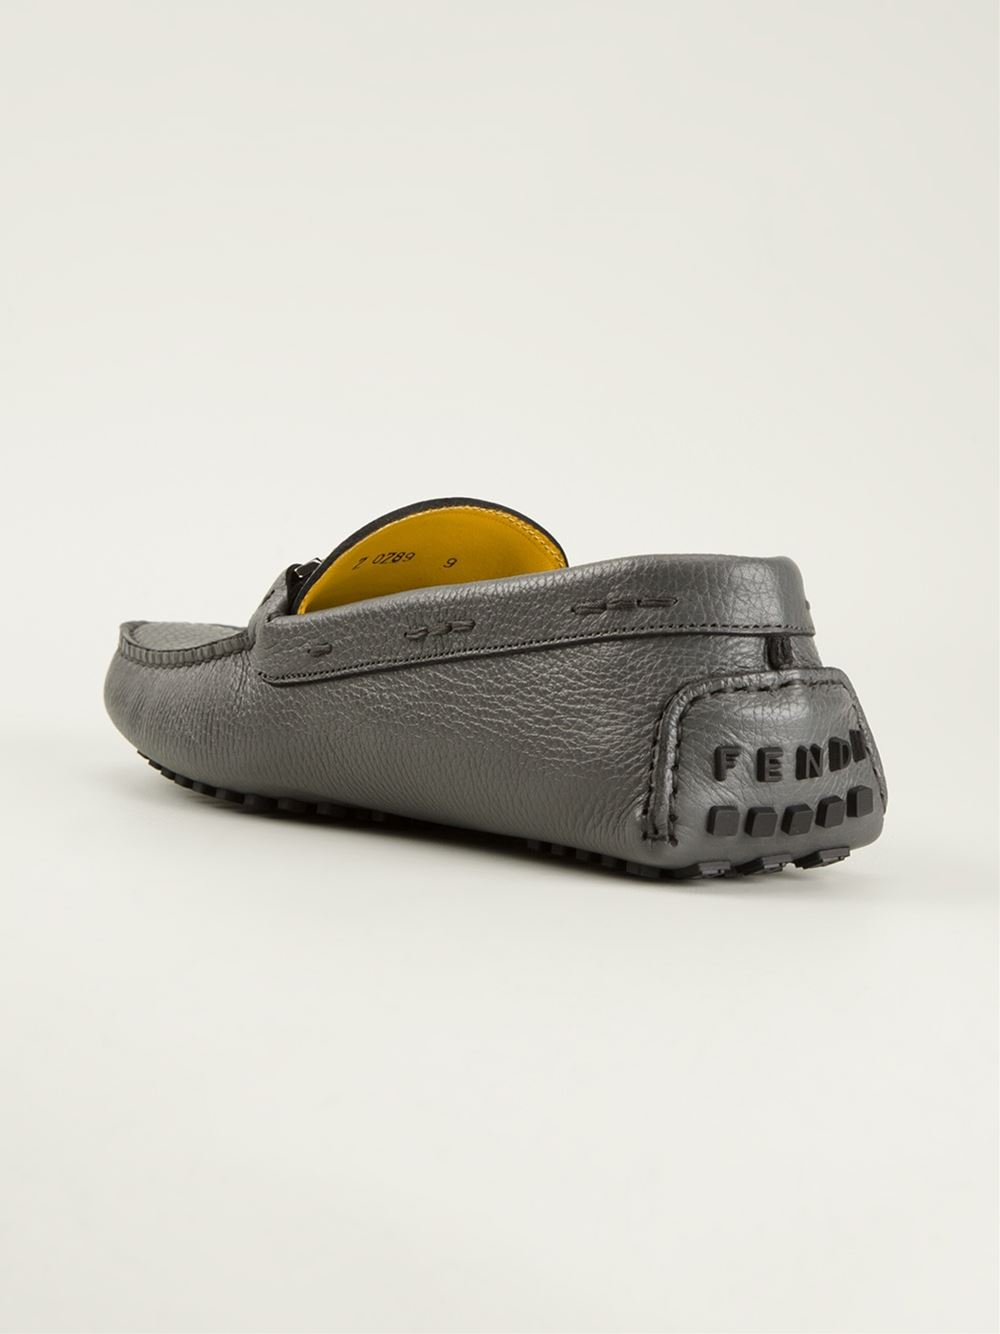 ced3d00244d Lyst fendi signature driving loafers in gray for men jpg 1000x1334 Fendi  loafers